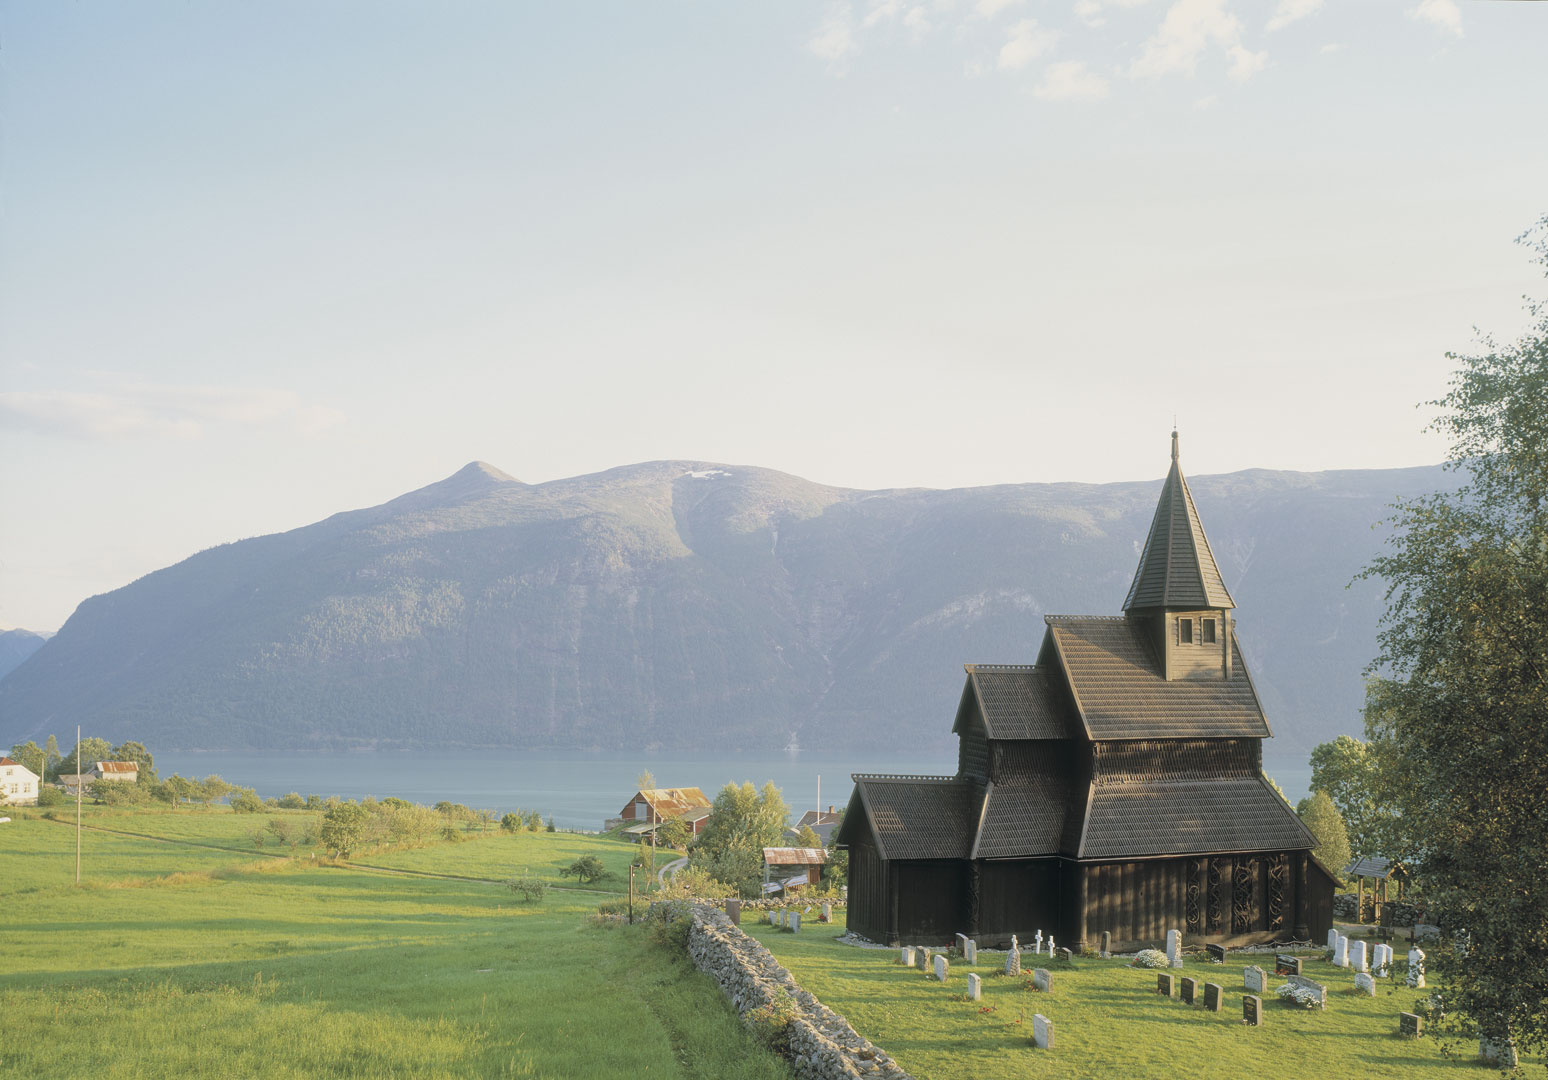 Urnes Stave Church Cultural heritage site with World Heritage status. Photo: Jiri Havran, the Norwegian Directorate for Cultural Heritage